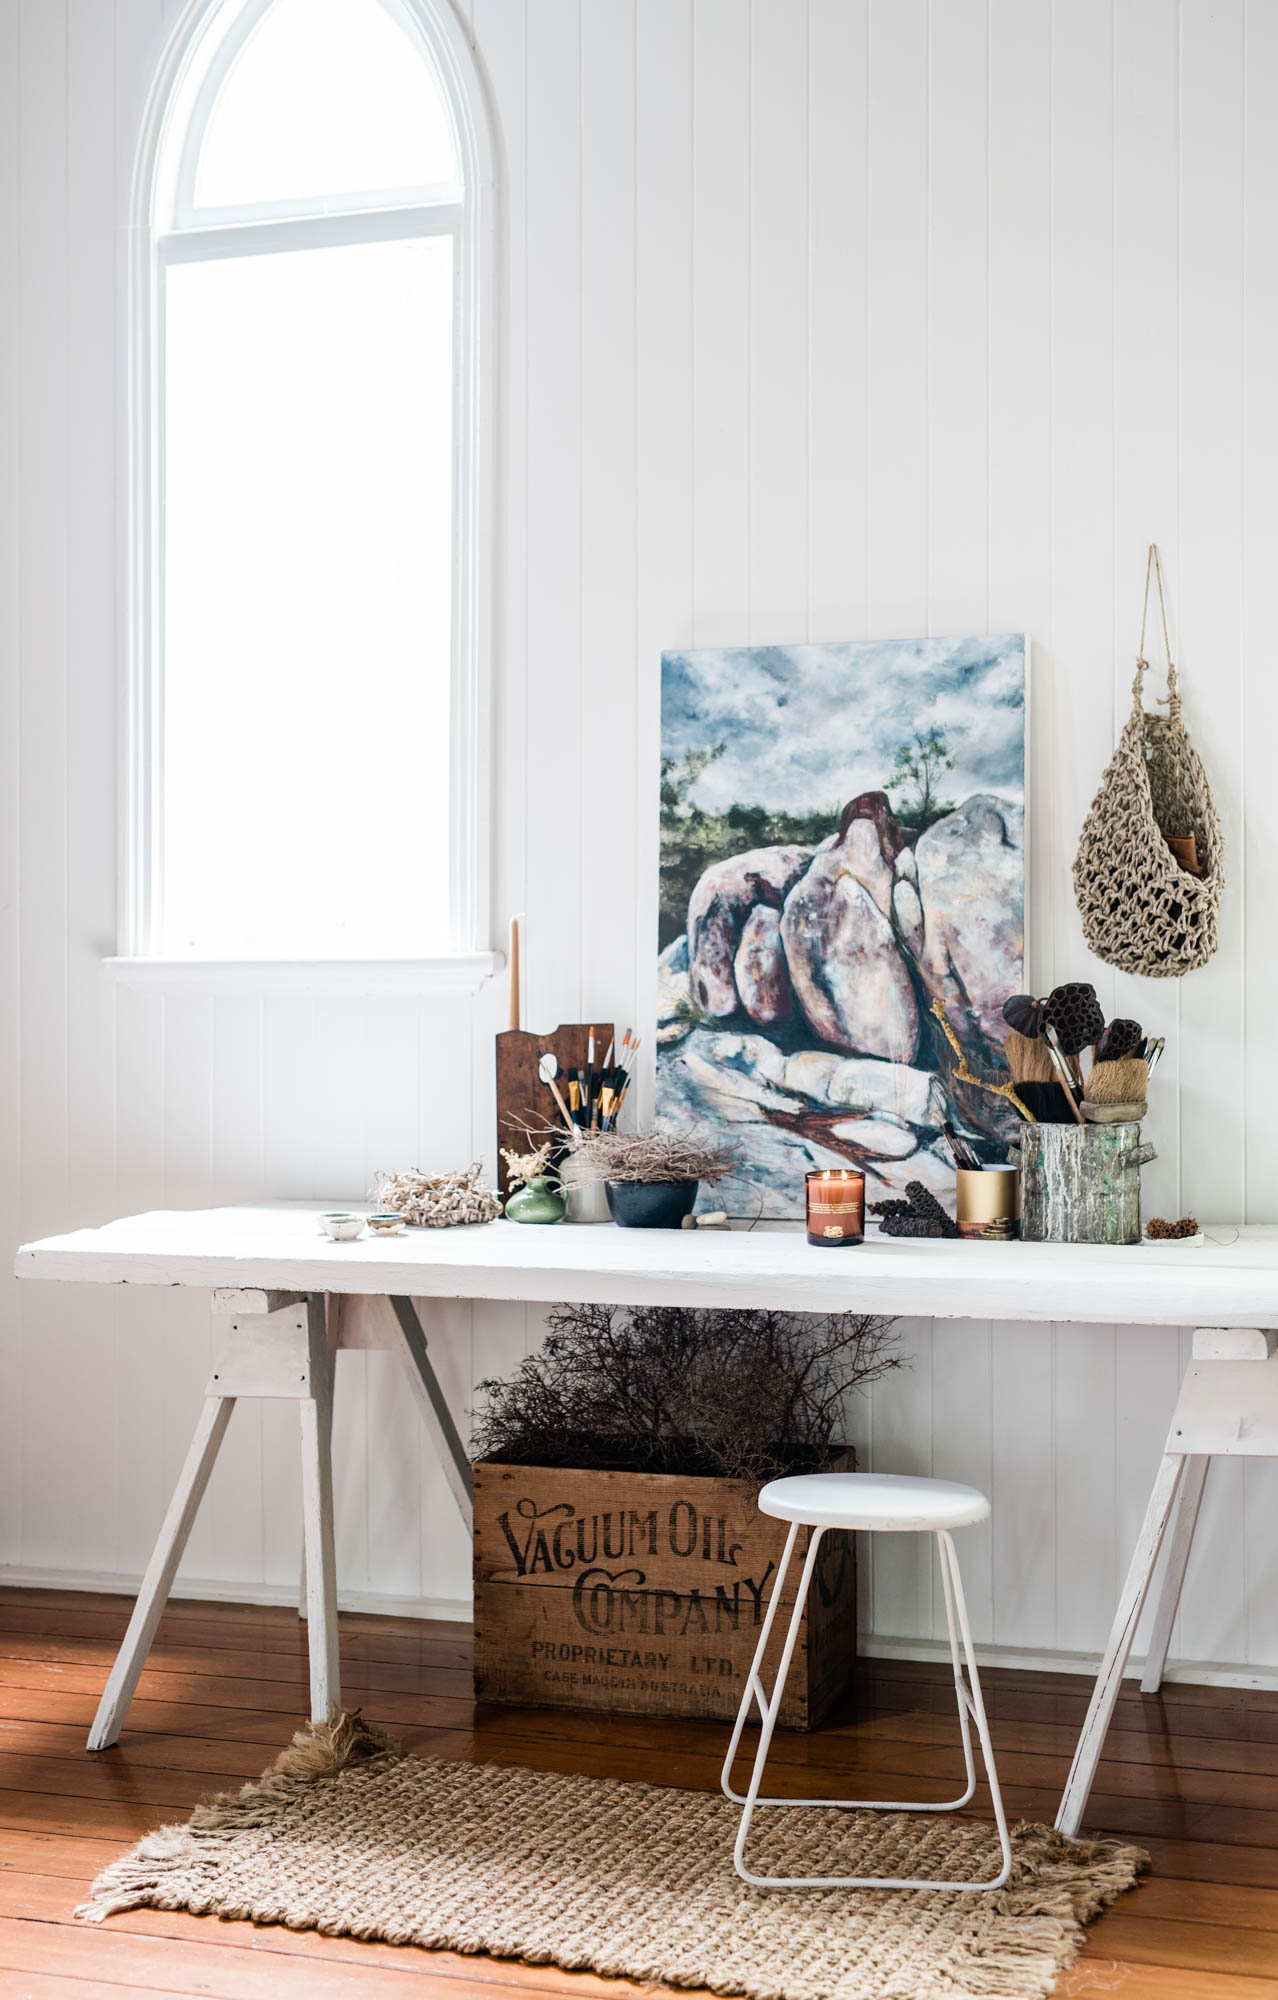 Web-hannah puechmarin-southern wild co-albert and grace styling- product photography-4851.jpg